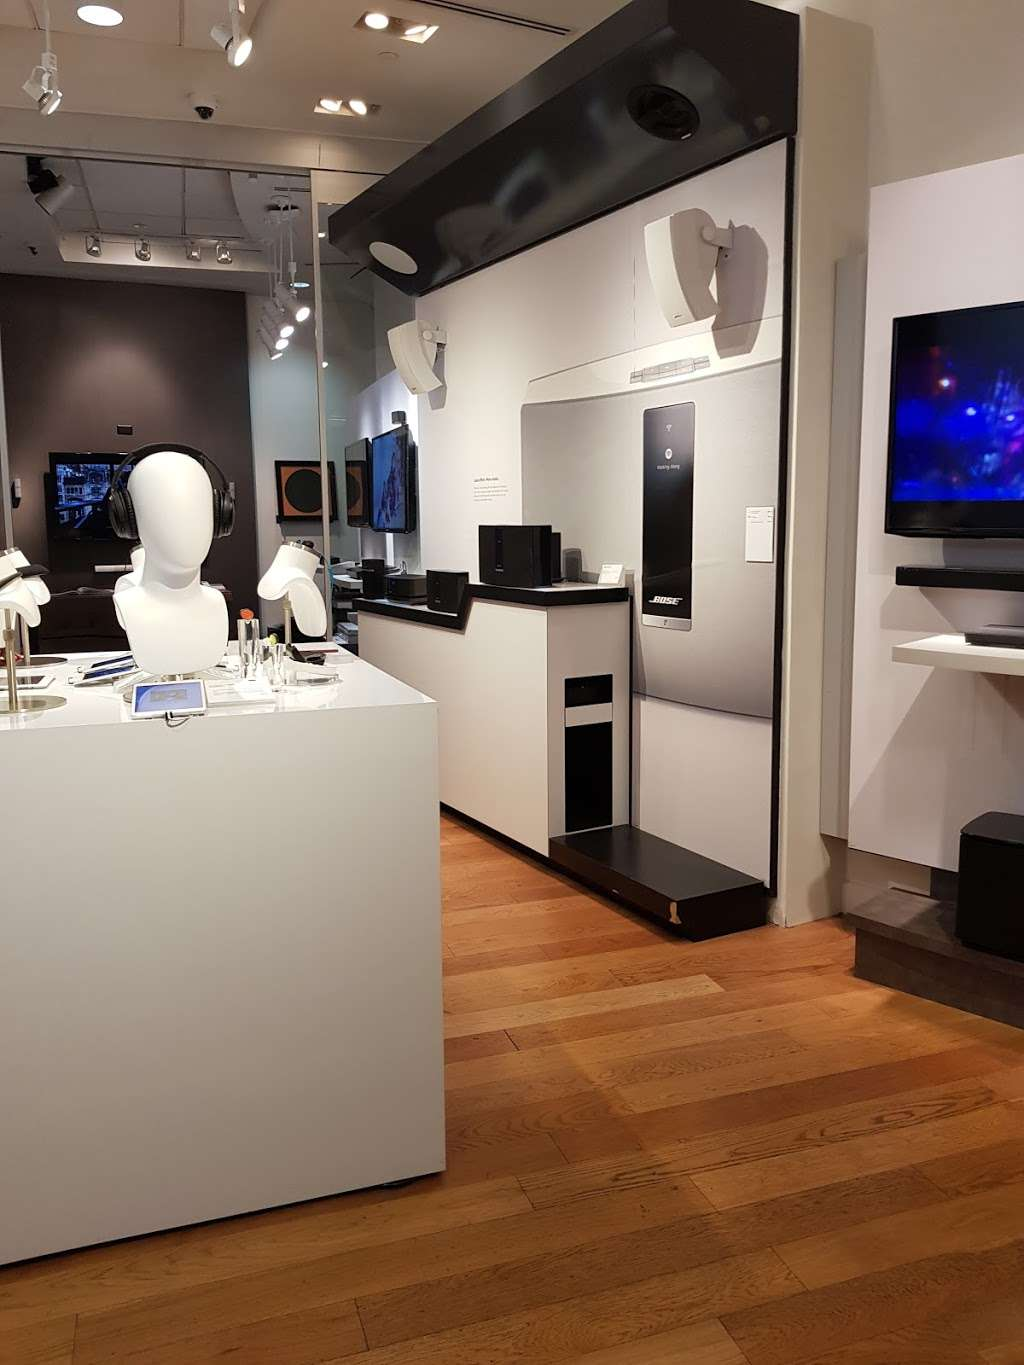 Bose Showcase Store - electronics store  | Photo 3 of 10 | Address: 10 Columbus Cir #303, New York, NY 10019, USA | Phone: (212) 823-9314